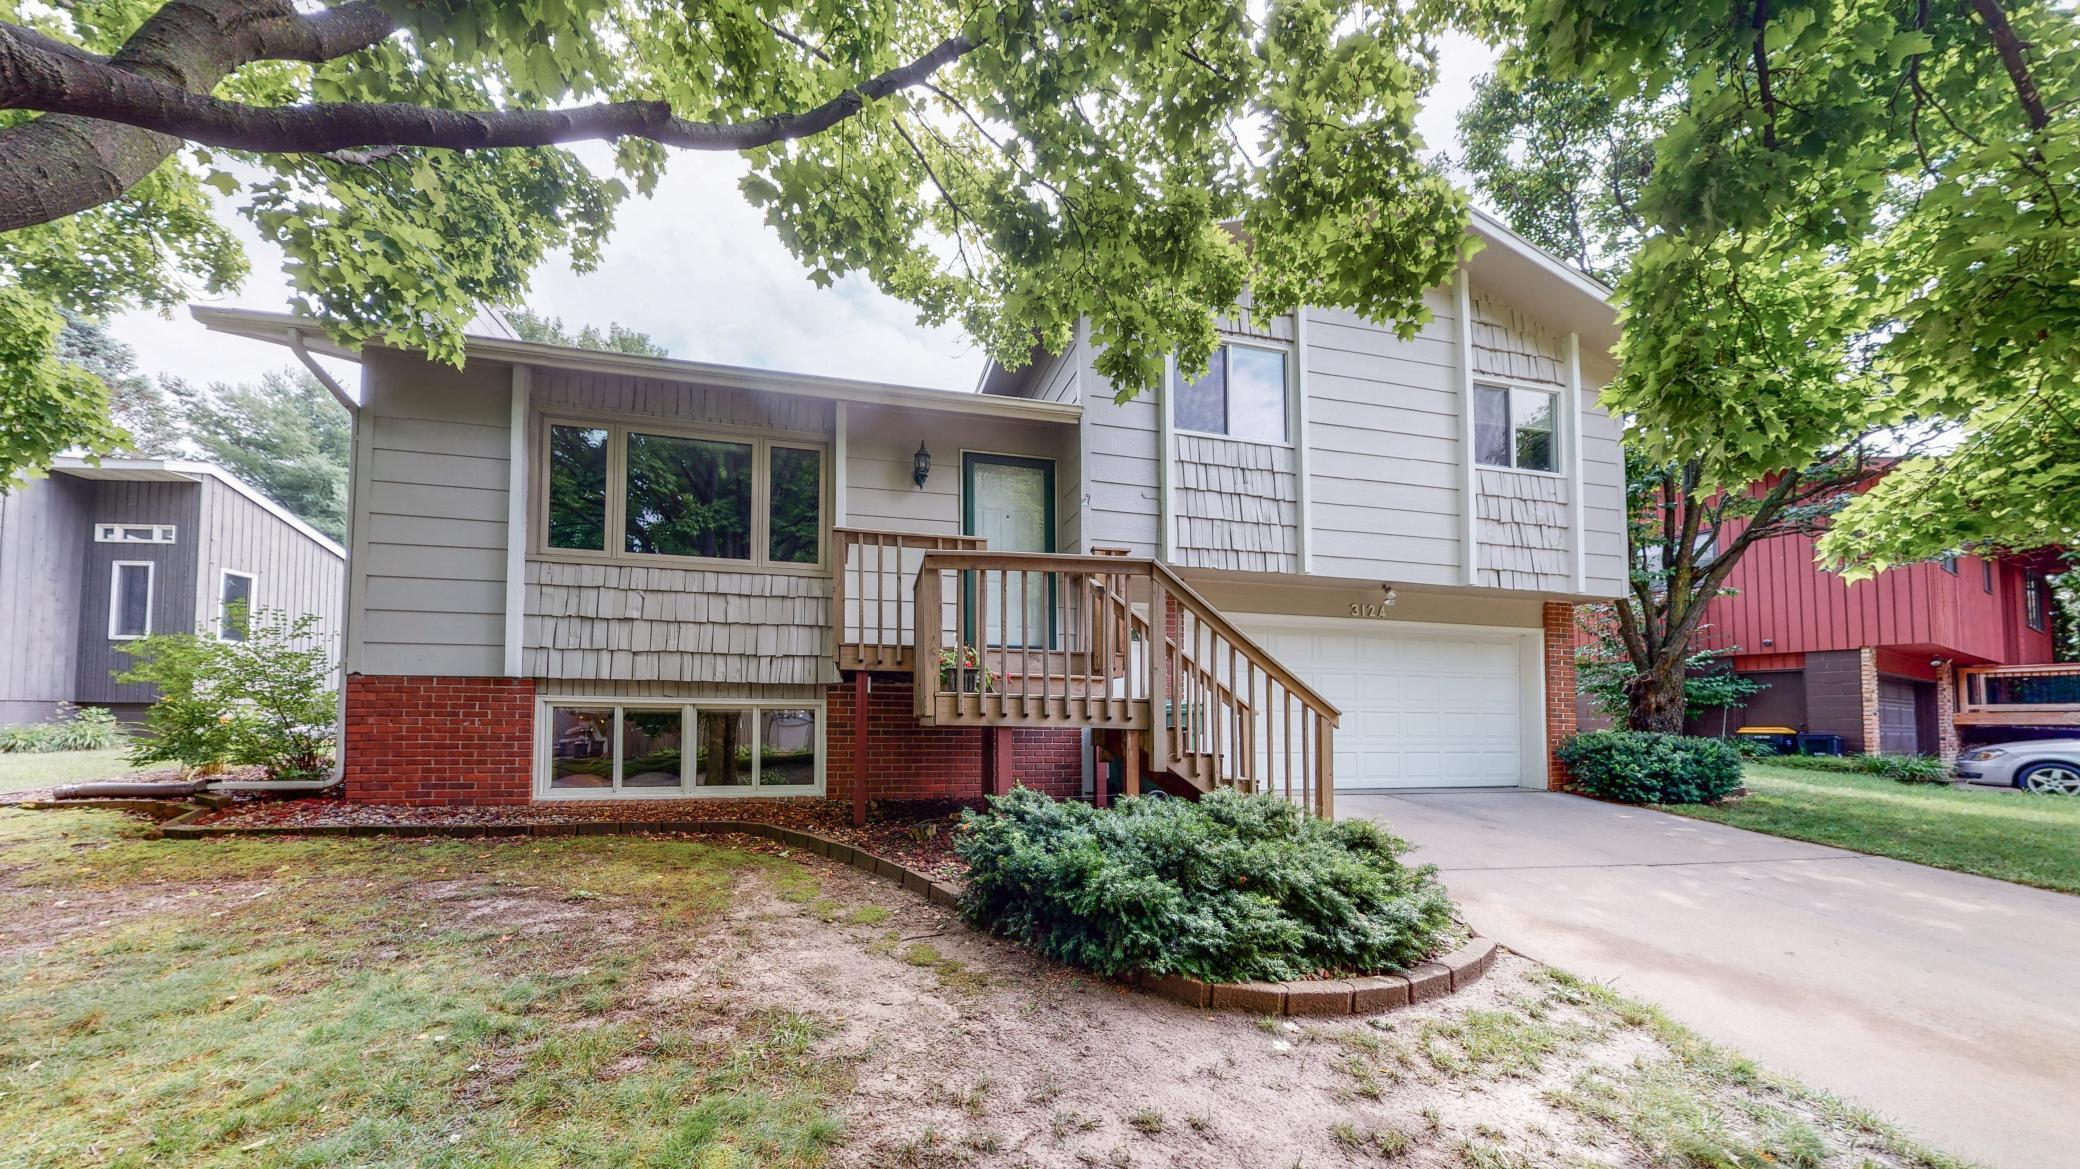 3124 11 1/2 NW Property Photo - Rochester, MN real estate listing